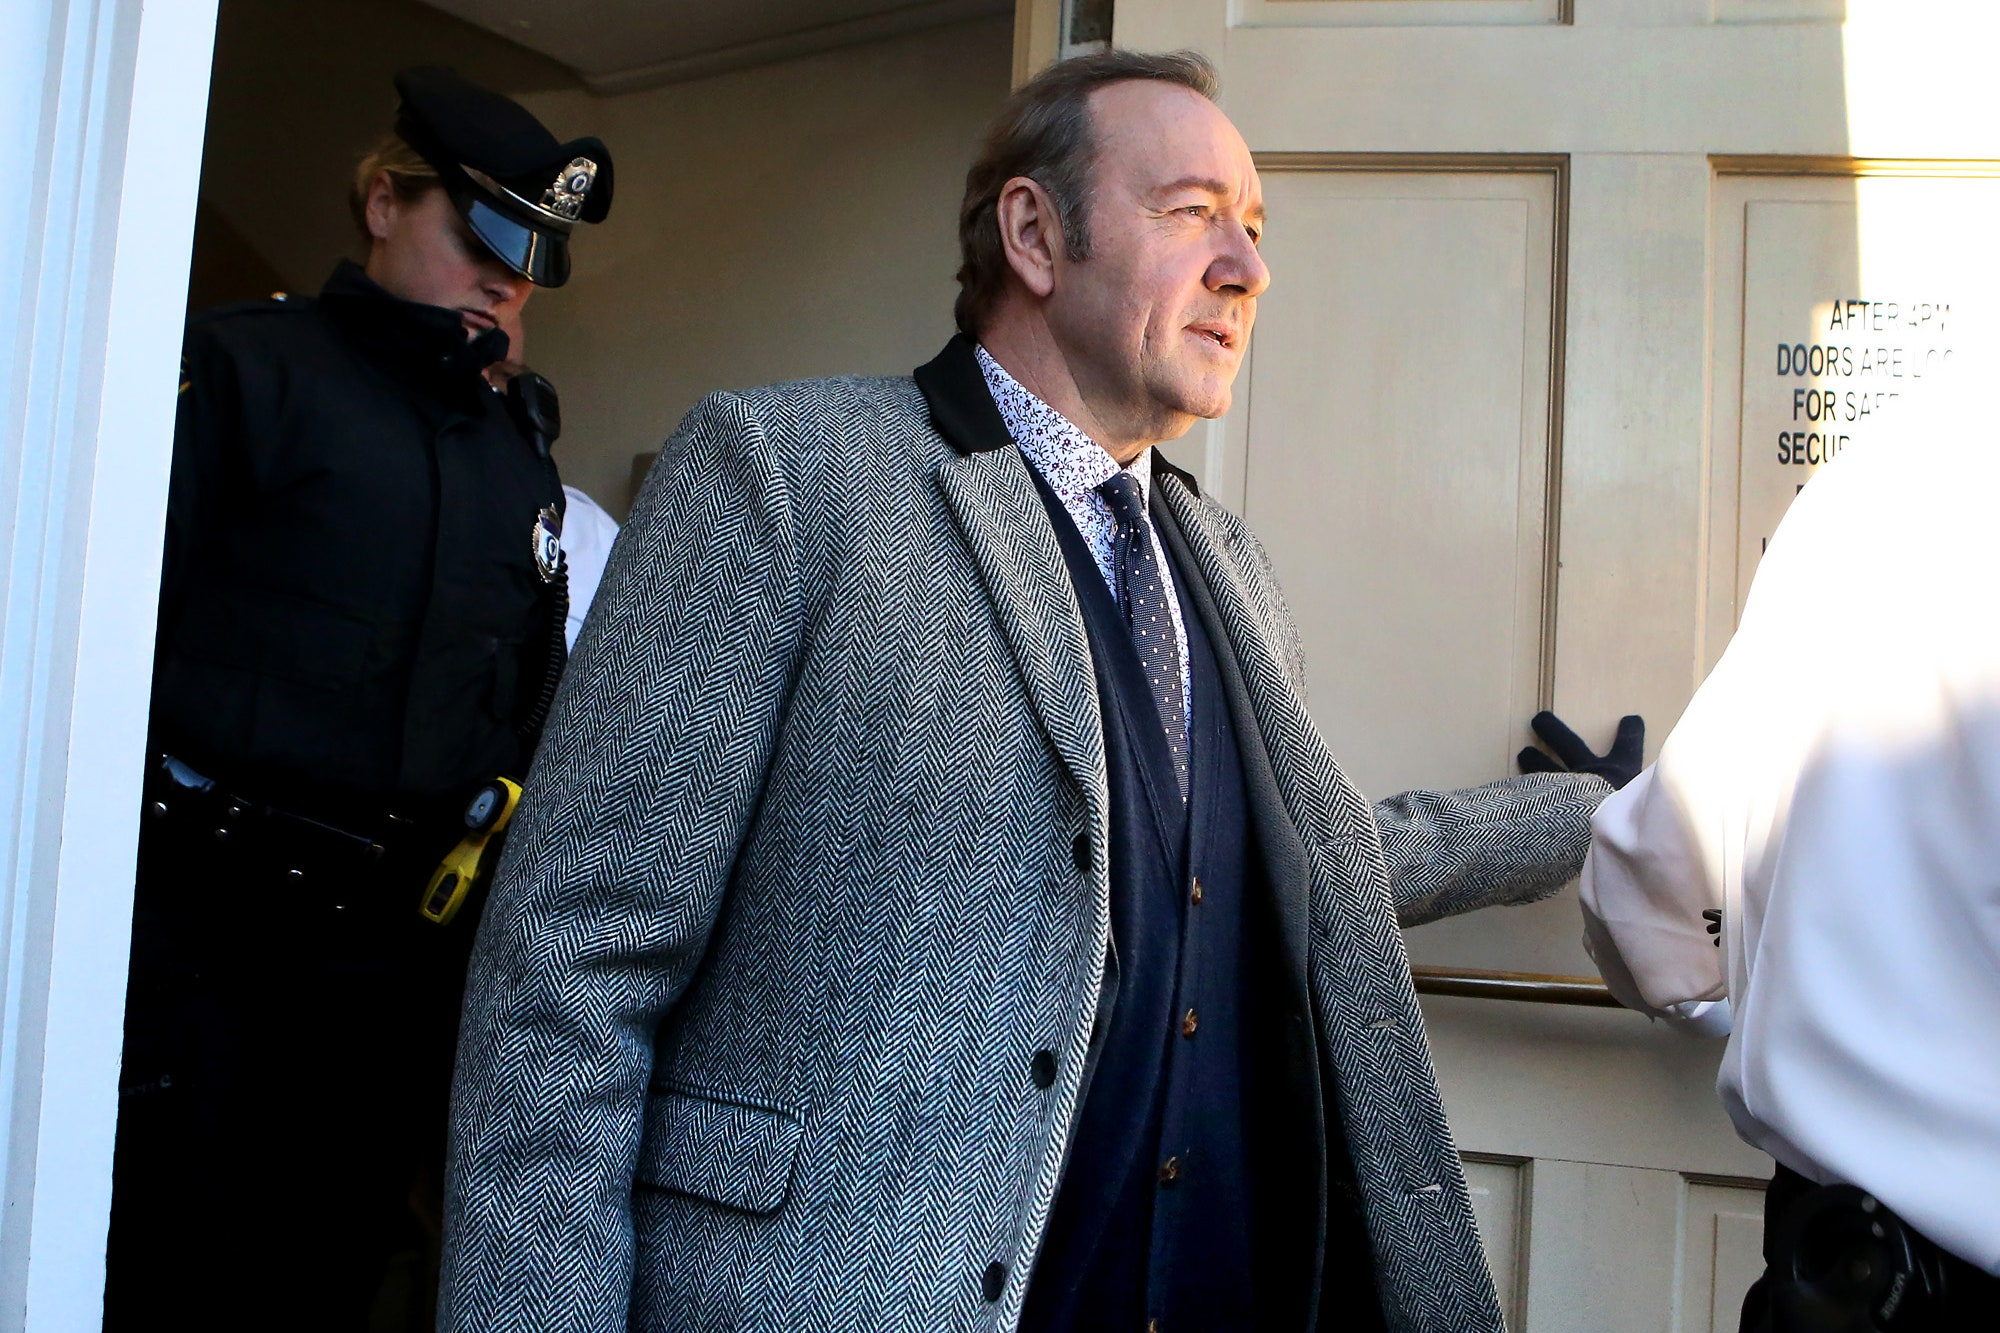 Kevin Spacey dismissed supportkevinspacey.com